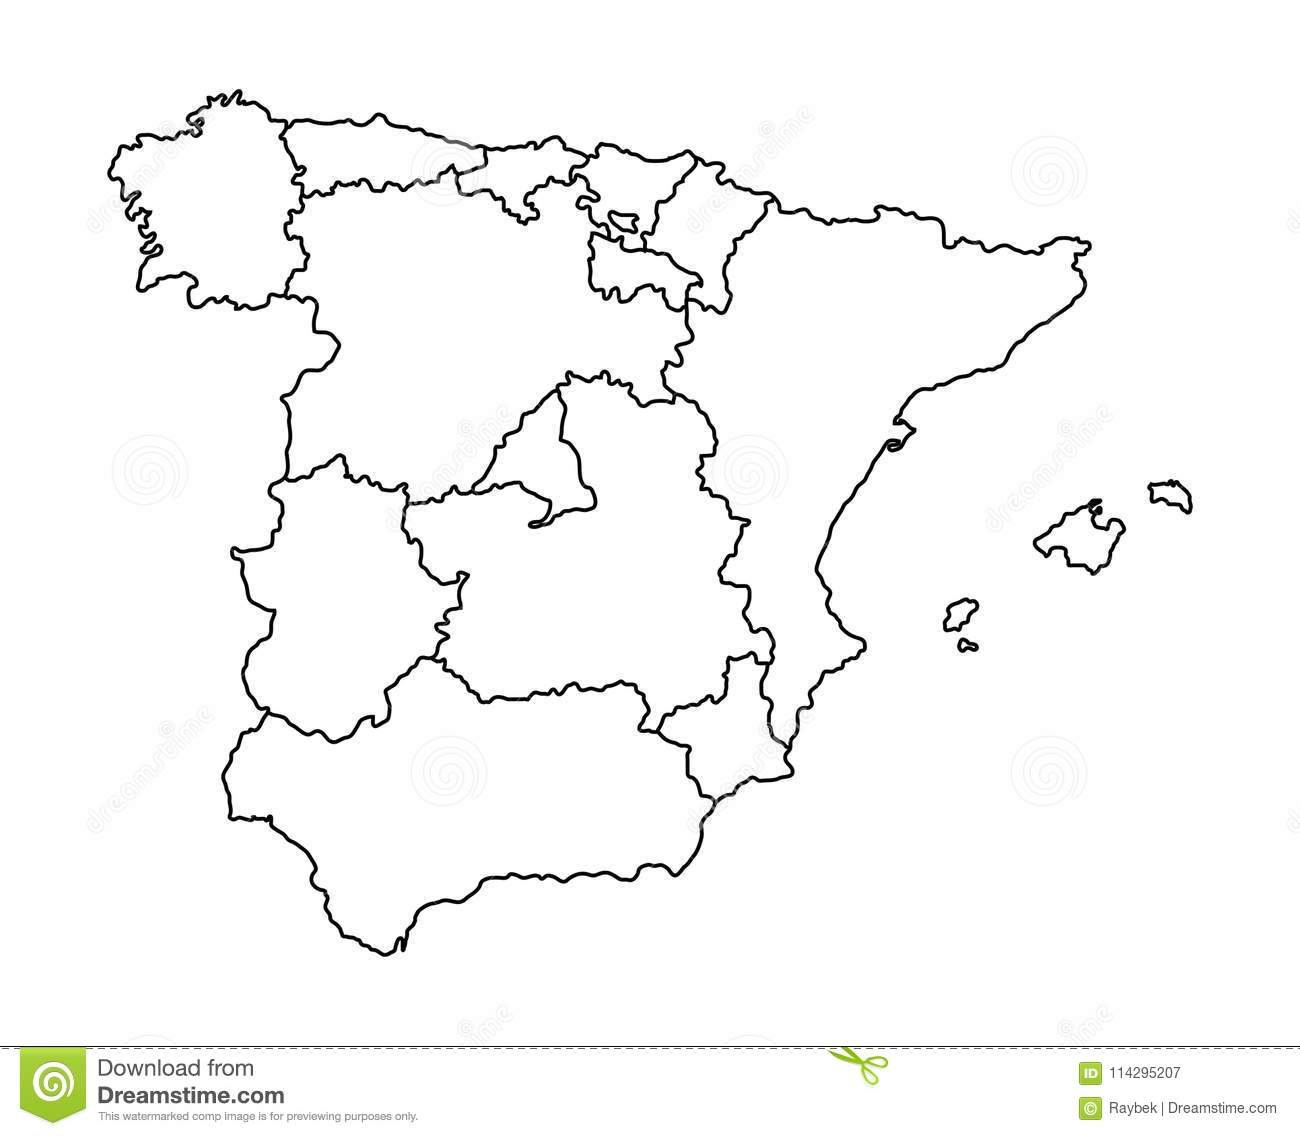 Map Of Spain Download Free.Map Of Spain Stock Illustration Illustration Of Pattern 114295207